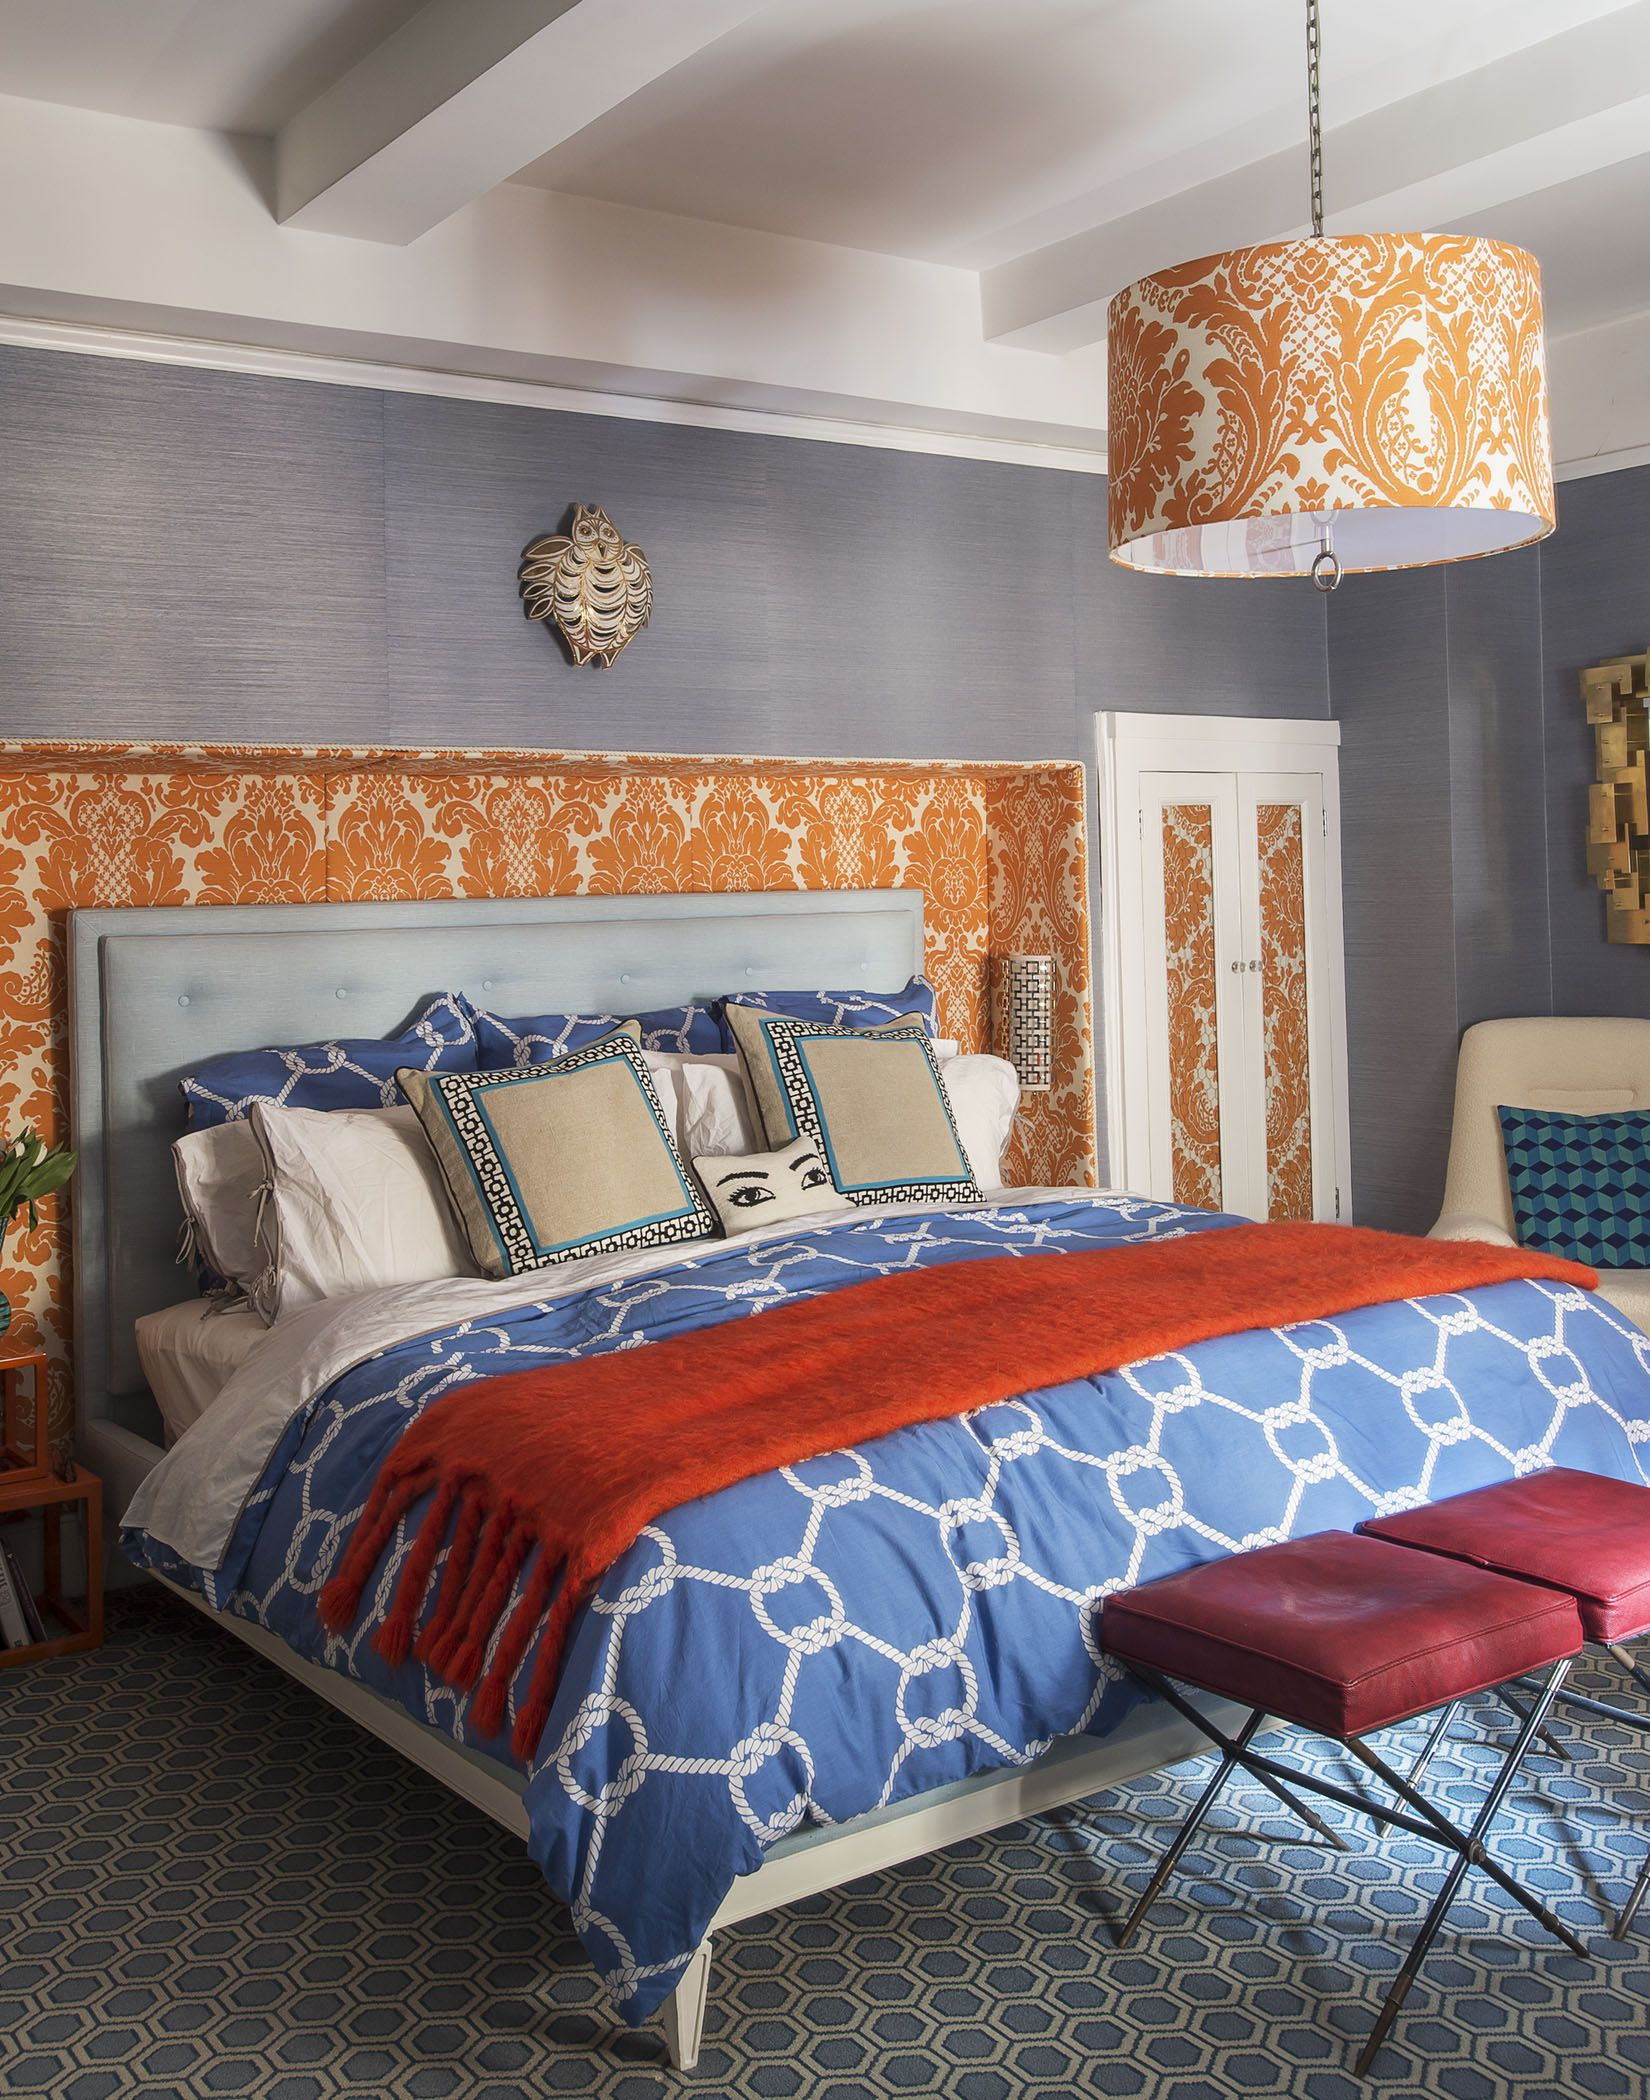 Jonathan Adlers Groovy Bedroom Featuring Palm Springs Pillows And - Jonathan adler bedroom